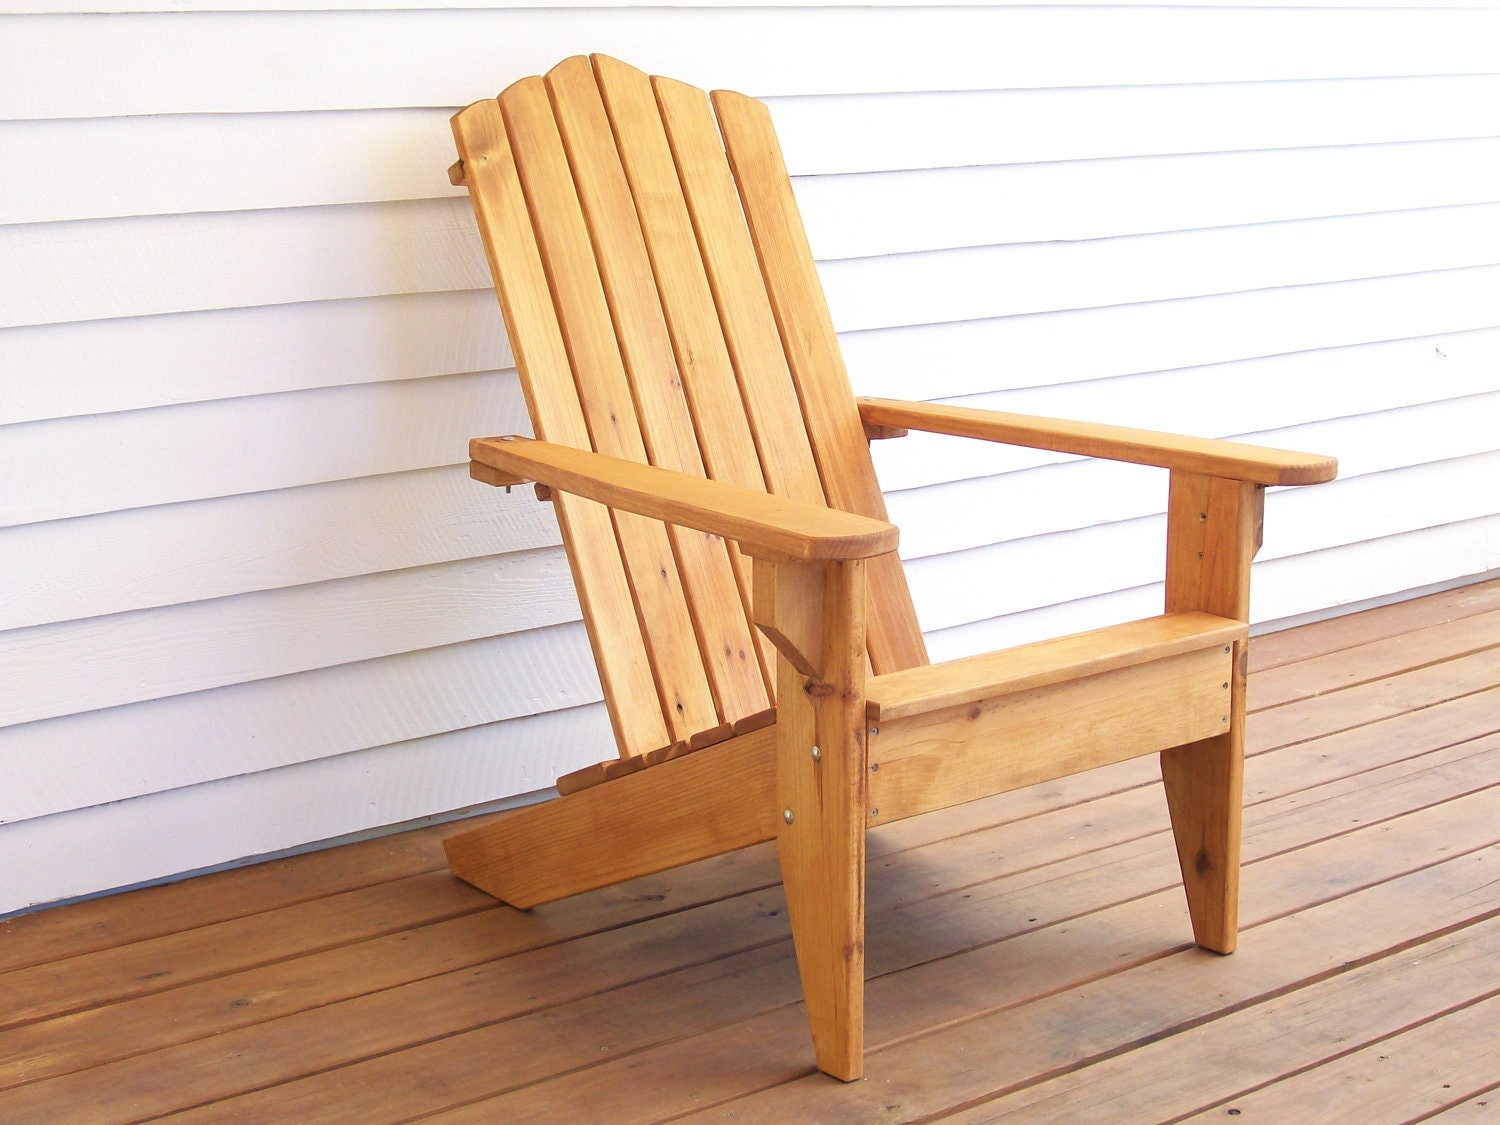 Wood Backyard Furniture ~ Outdoor wood furniture at the galleria